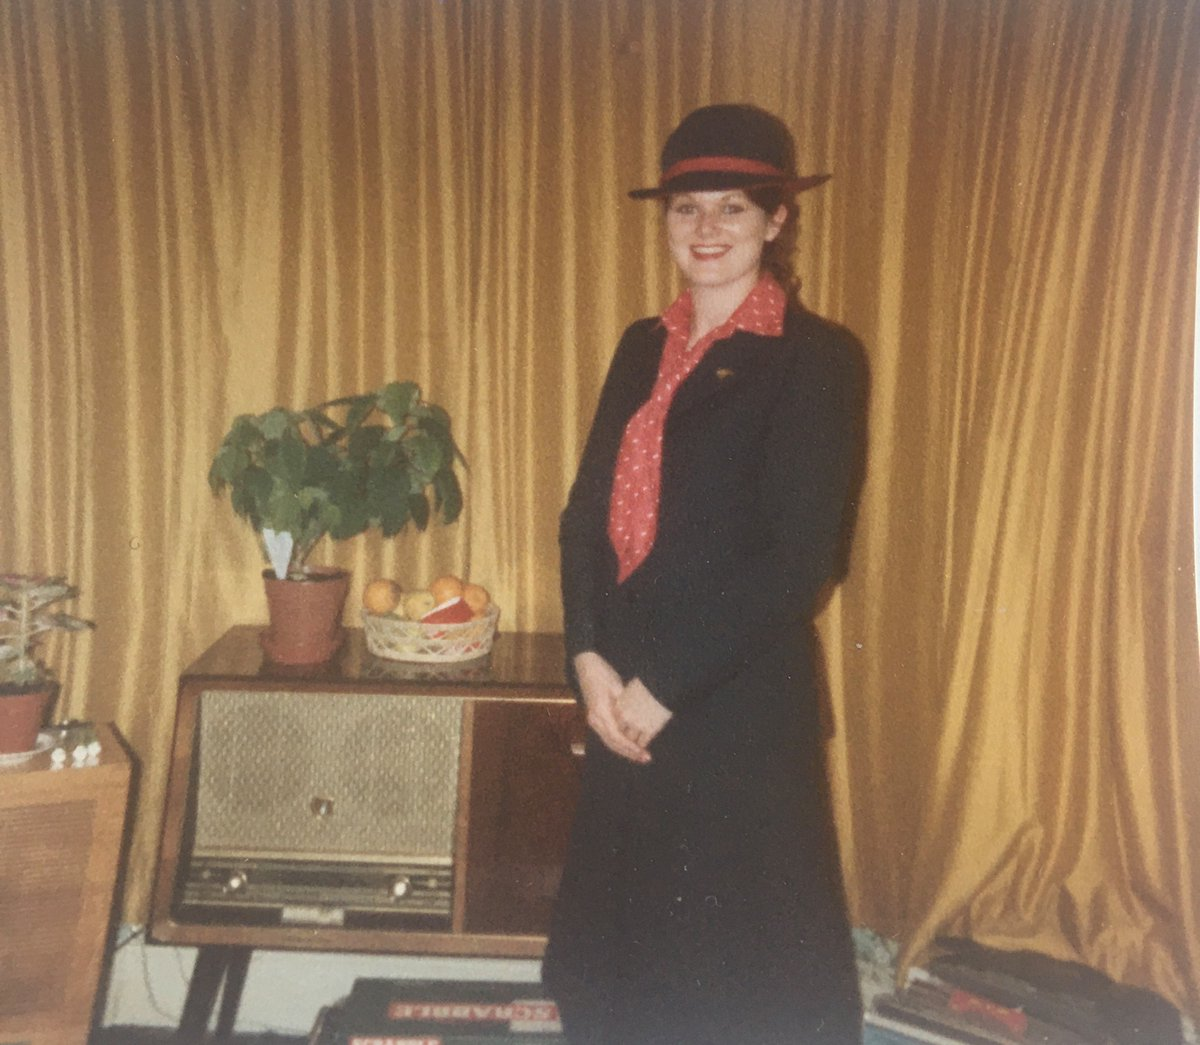 Huge congrats to our colleague Helen, who recently celebrated an incredible 40 years with TUI Airways. Her many career highlights include being the Cabin Manager on the first 787 Dreamliner flight from Manchester to Orlando ✈️#tbt #LifeAtTUI #Amazing https://t.co/ut2jgz4caR